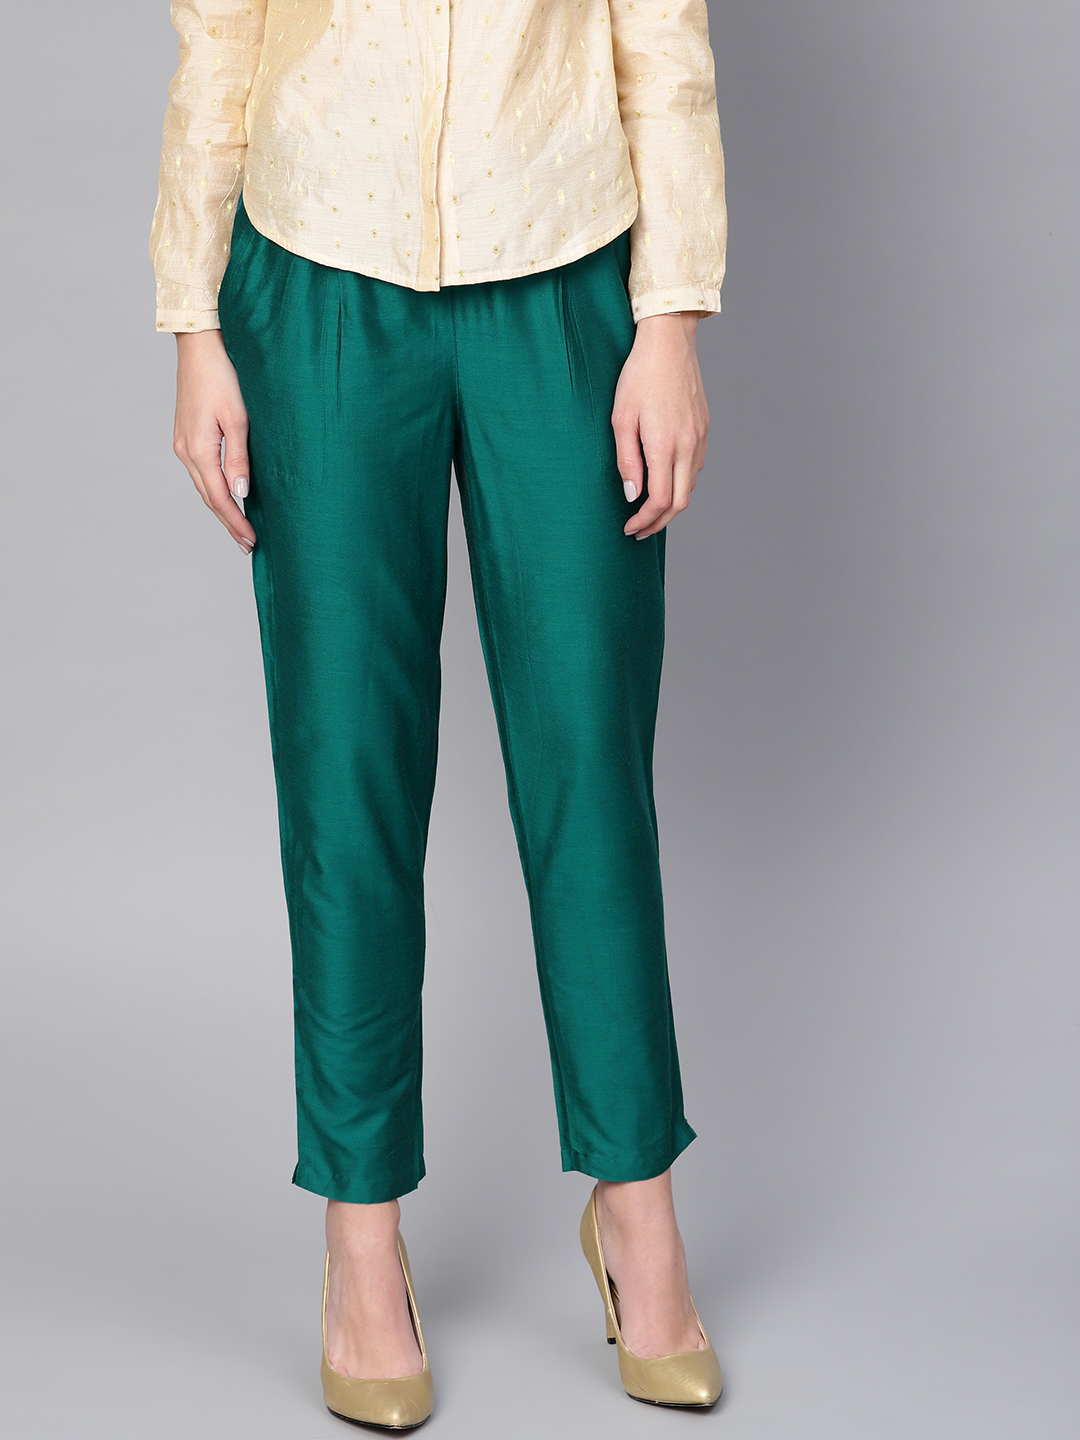 Bottle Green Cotton Silk Ankle Pant-34264